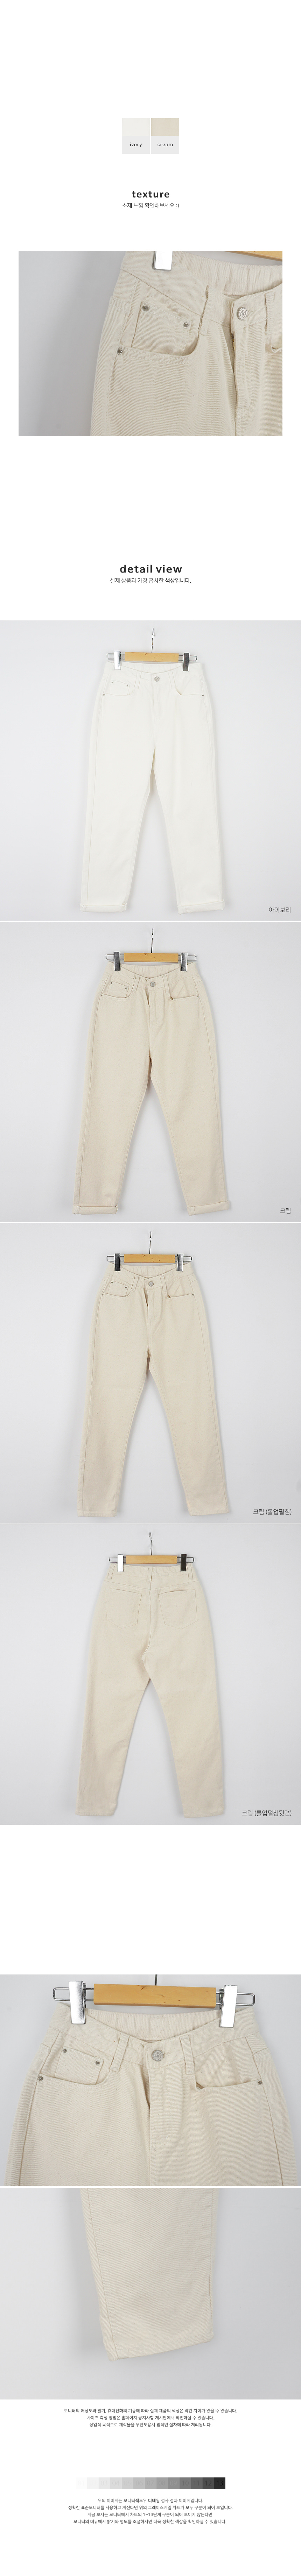 Roll-up cotton trousers